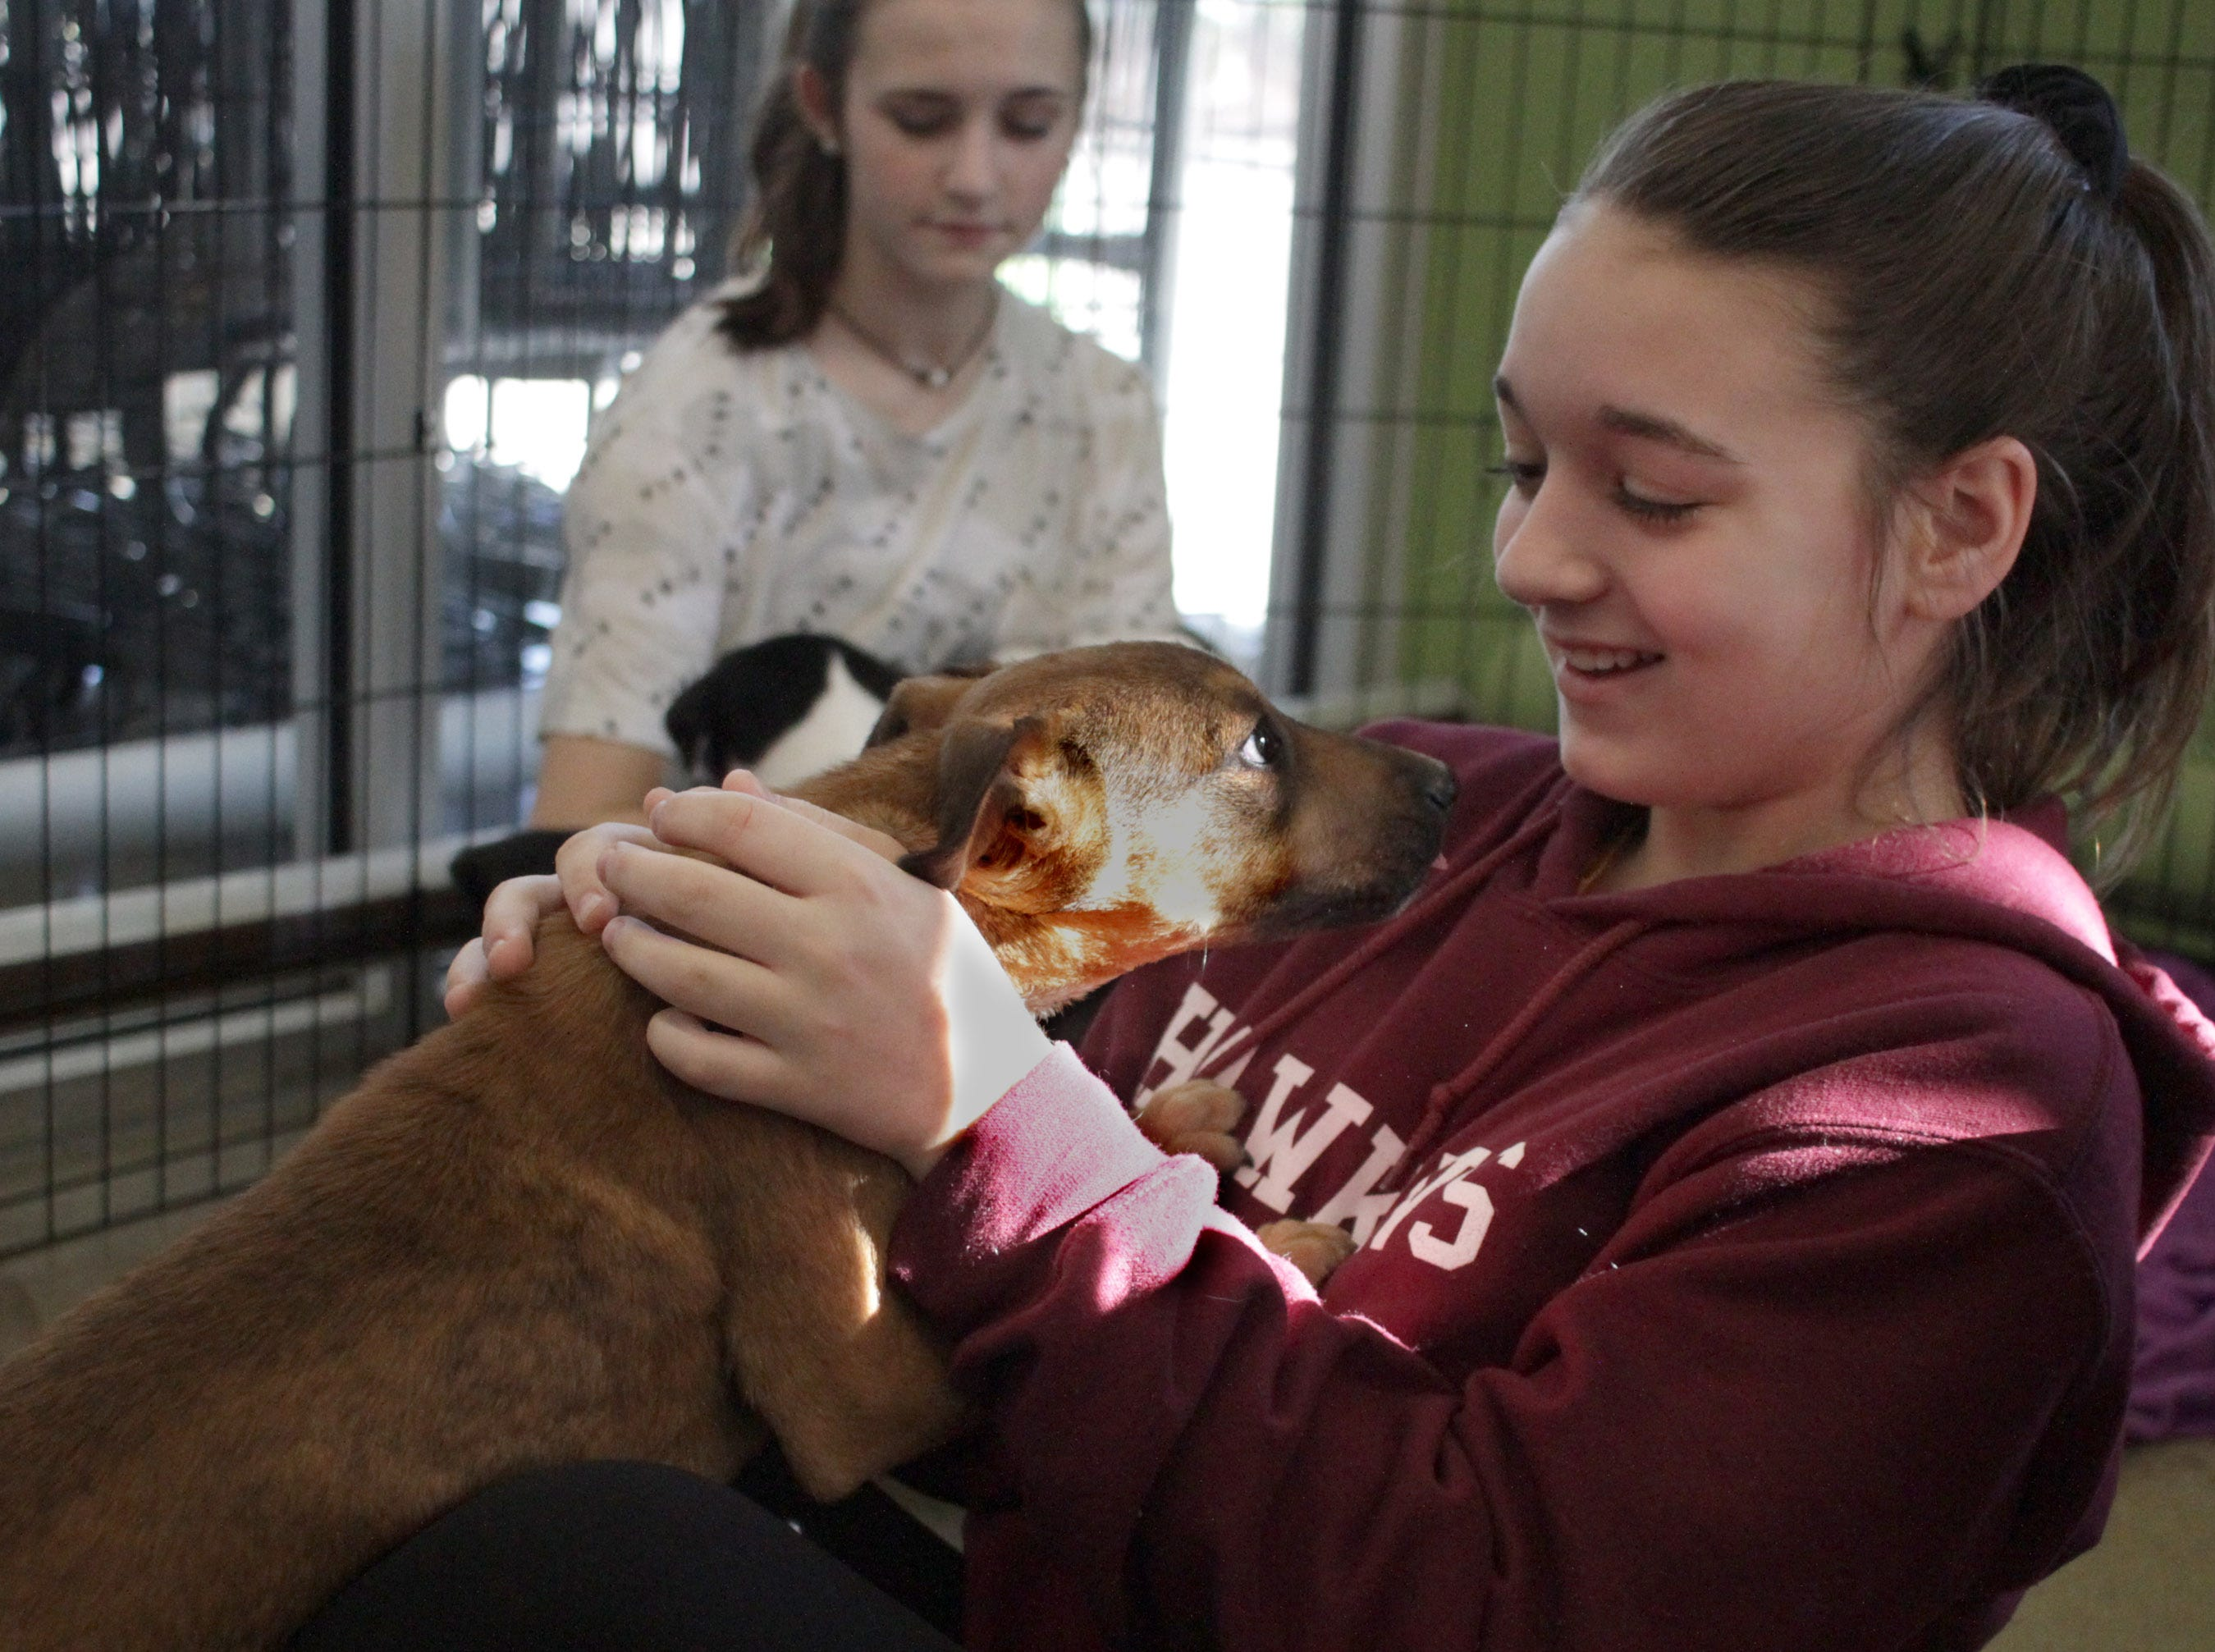 Skylar Martin plays the with the puppies at Jojo's Doghouse adoption event at Pet Supplies Plus in Hendersonville, TN on Saturday, January 5, 2019.